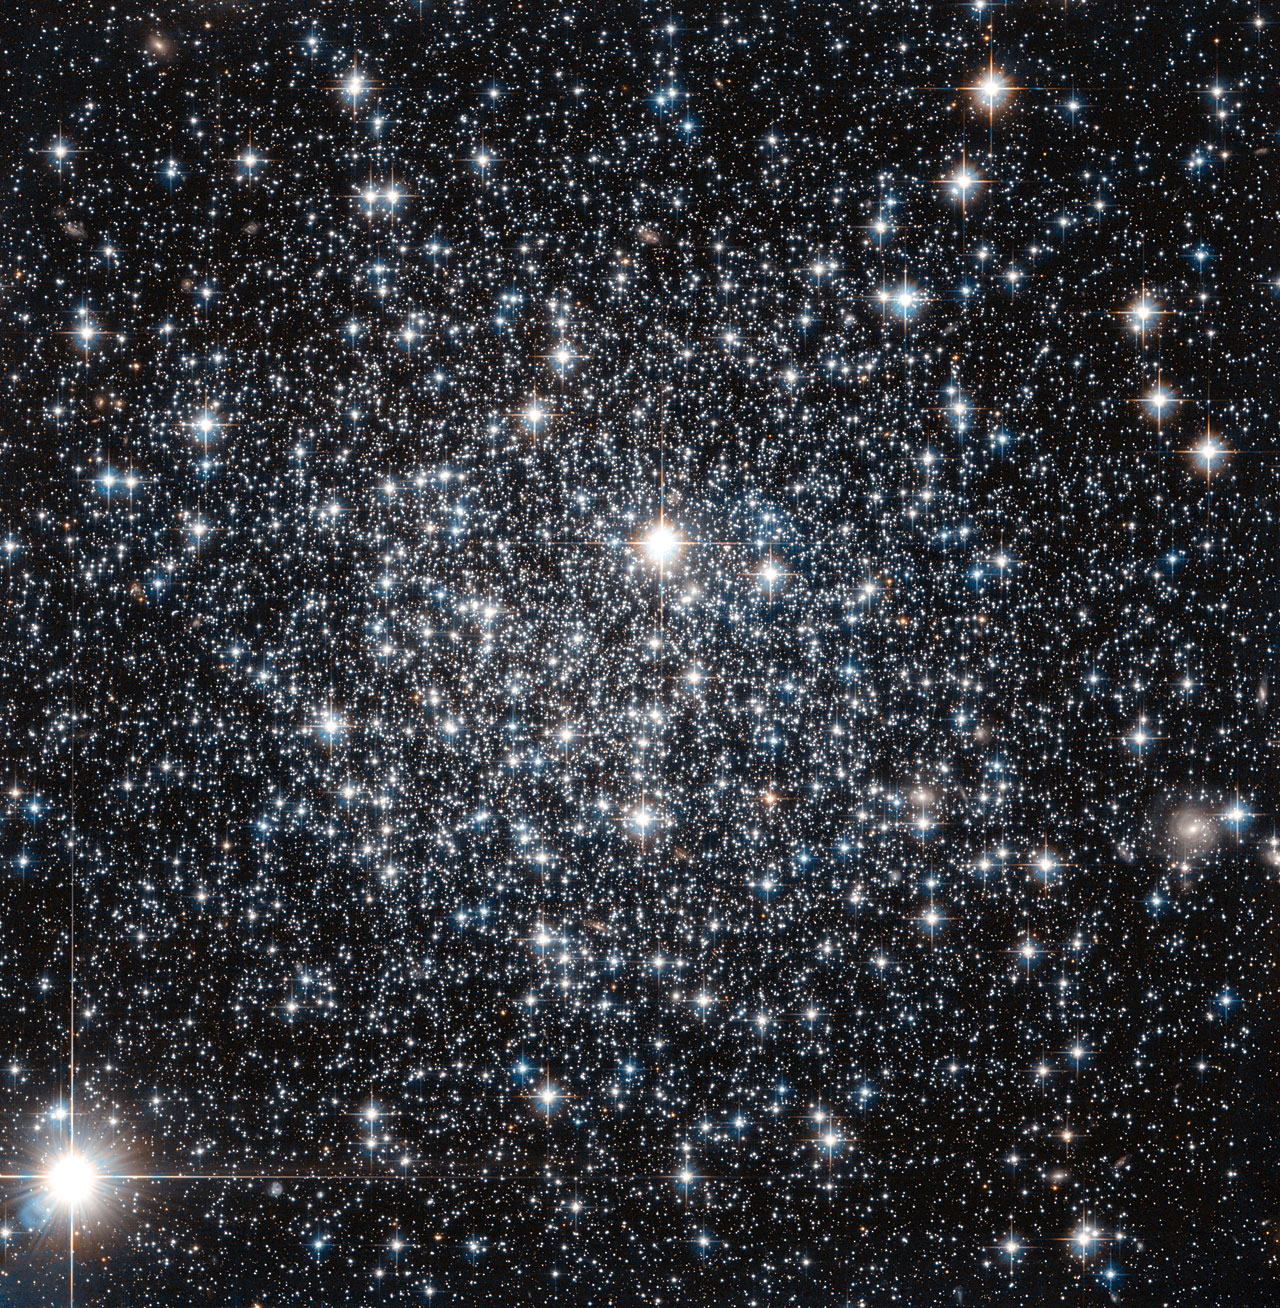 Hubble Revisits a Globular Cluster's Age